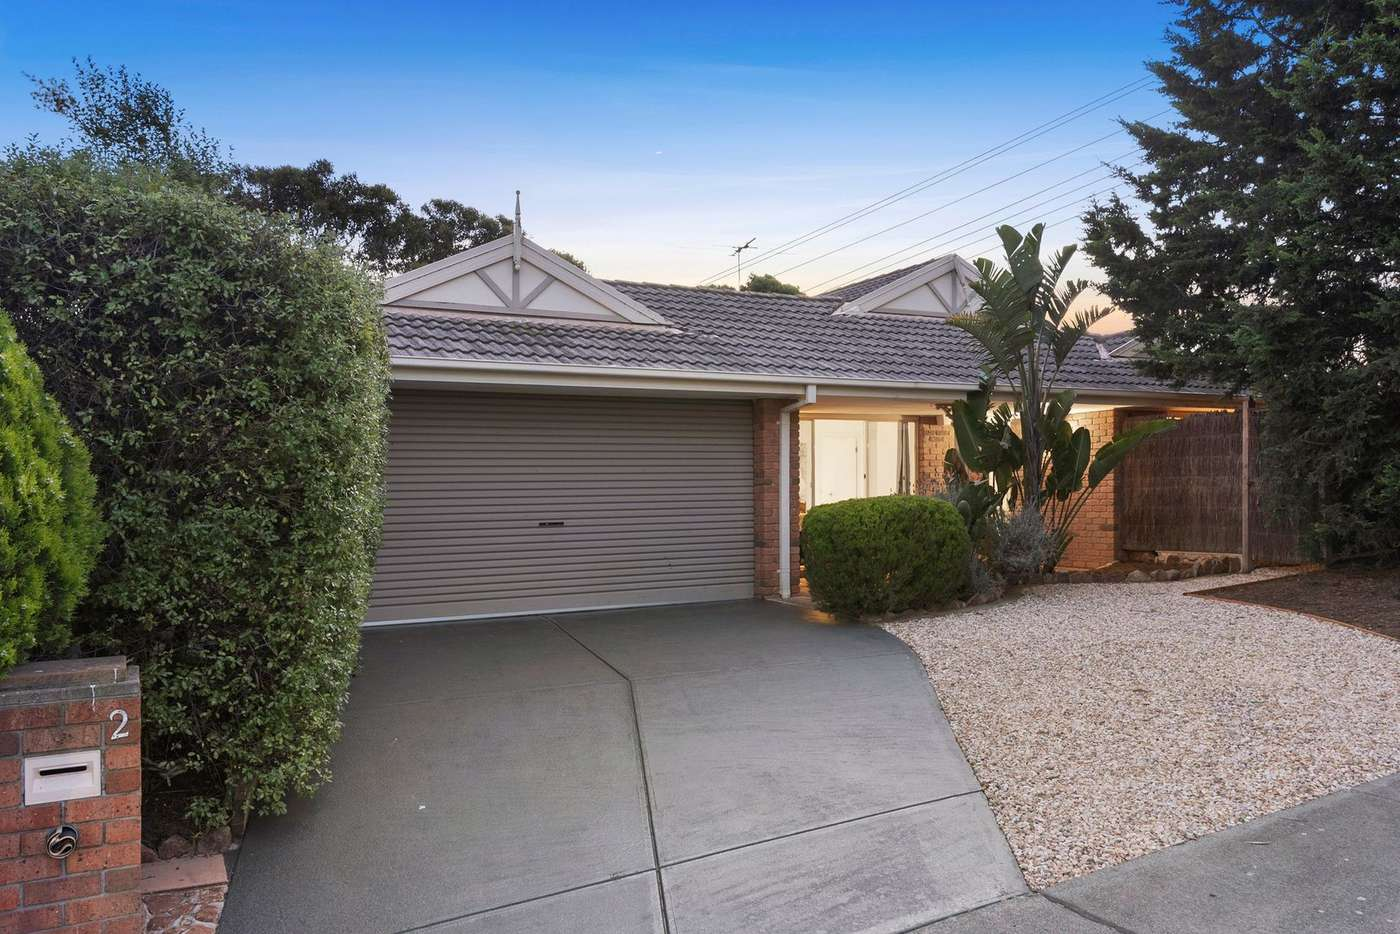 Main view of Homely house listing, 2 Hyperno Way, Mount Martha VIC 3934